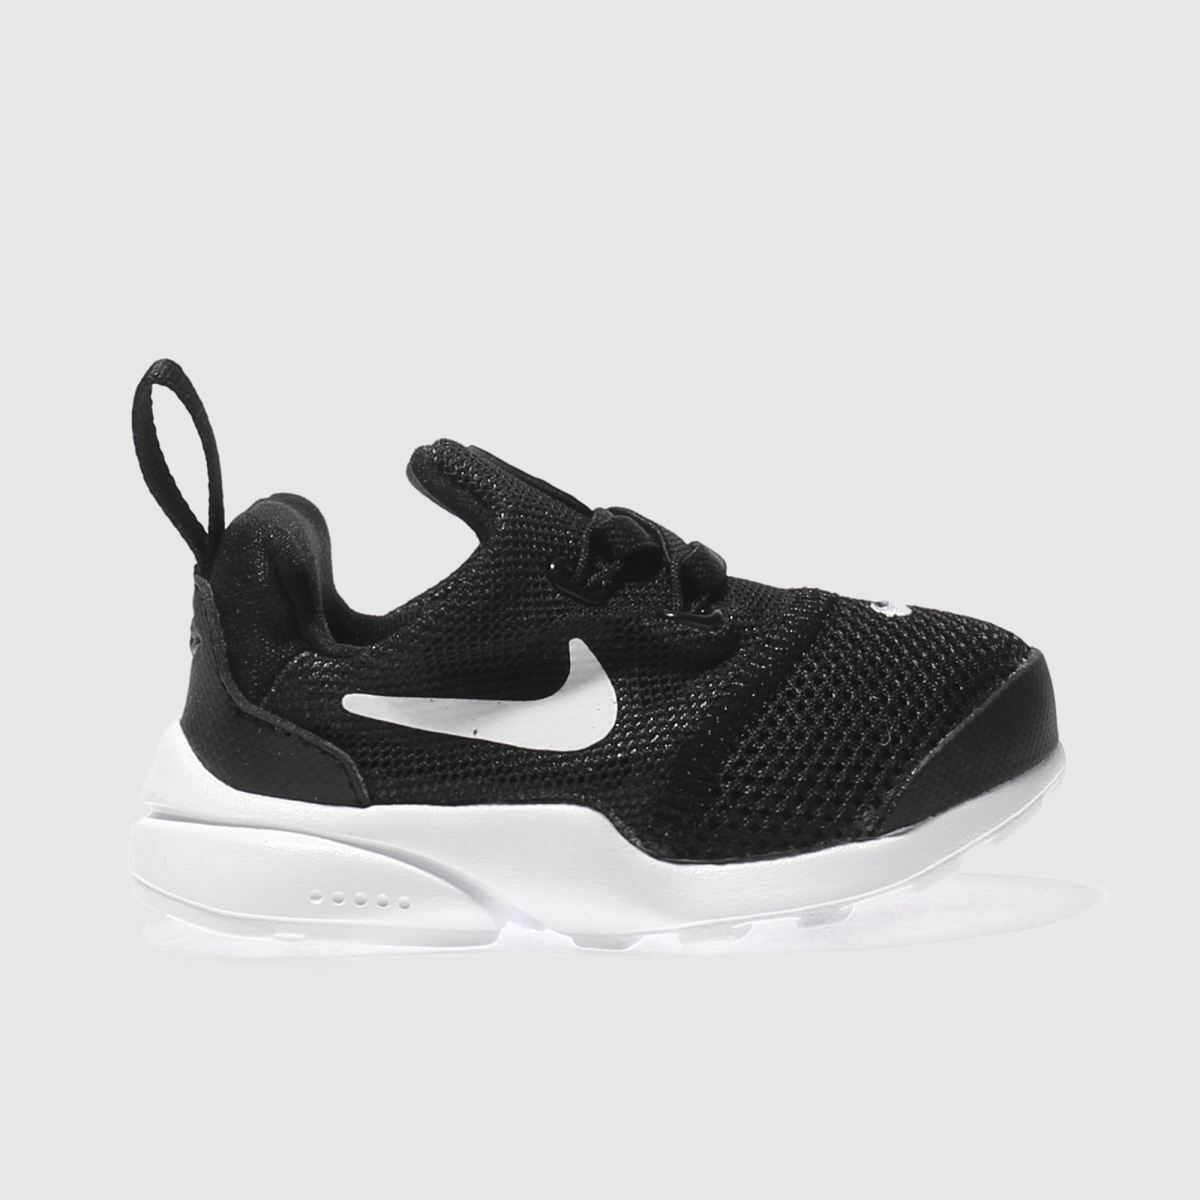 nike black & white presto fly Toddler Trainers